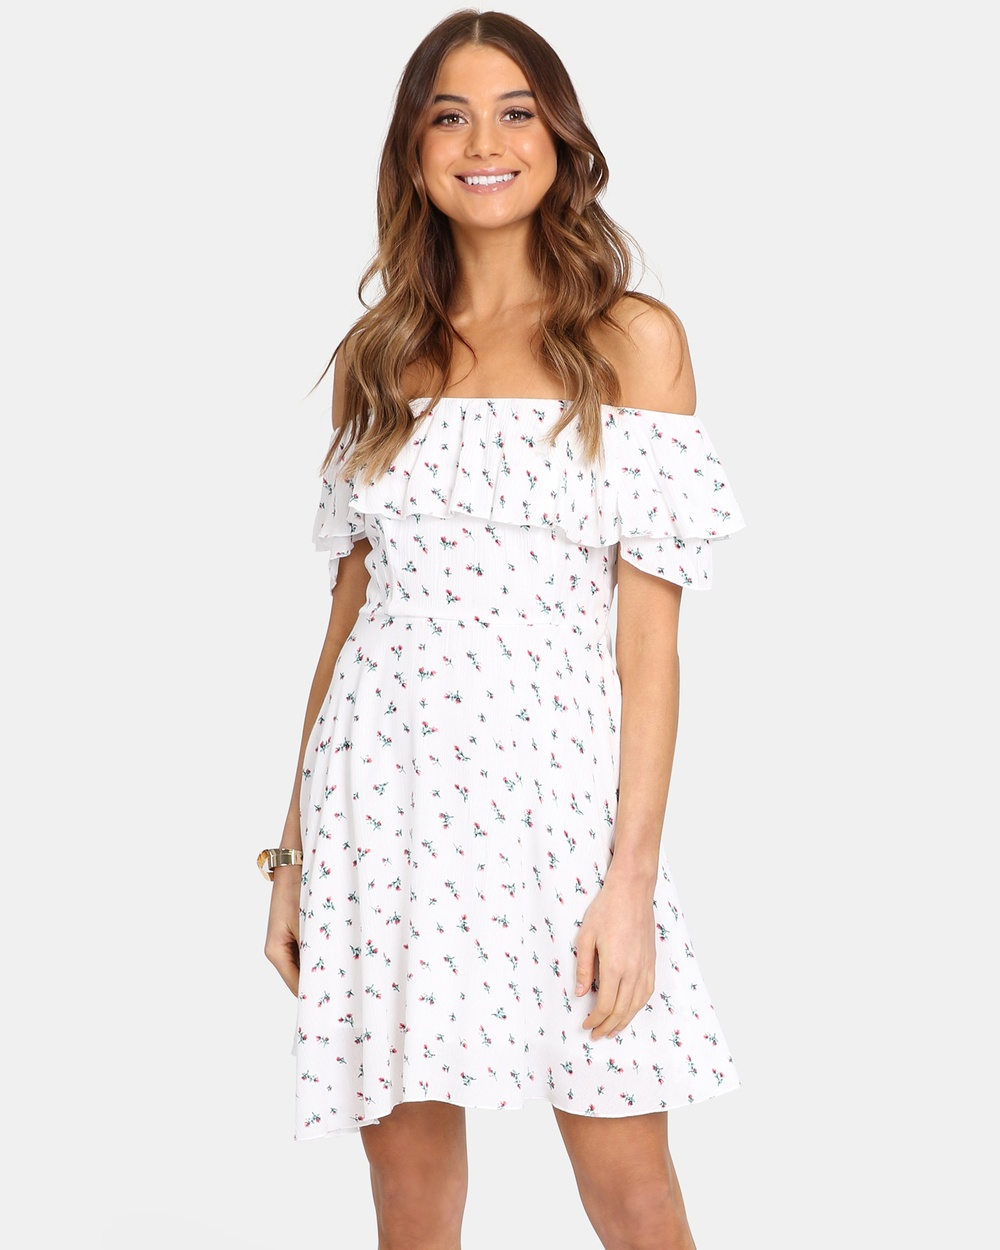 Lost in Lunar White Darci Swing Dress